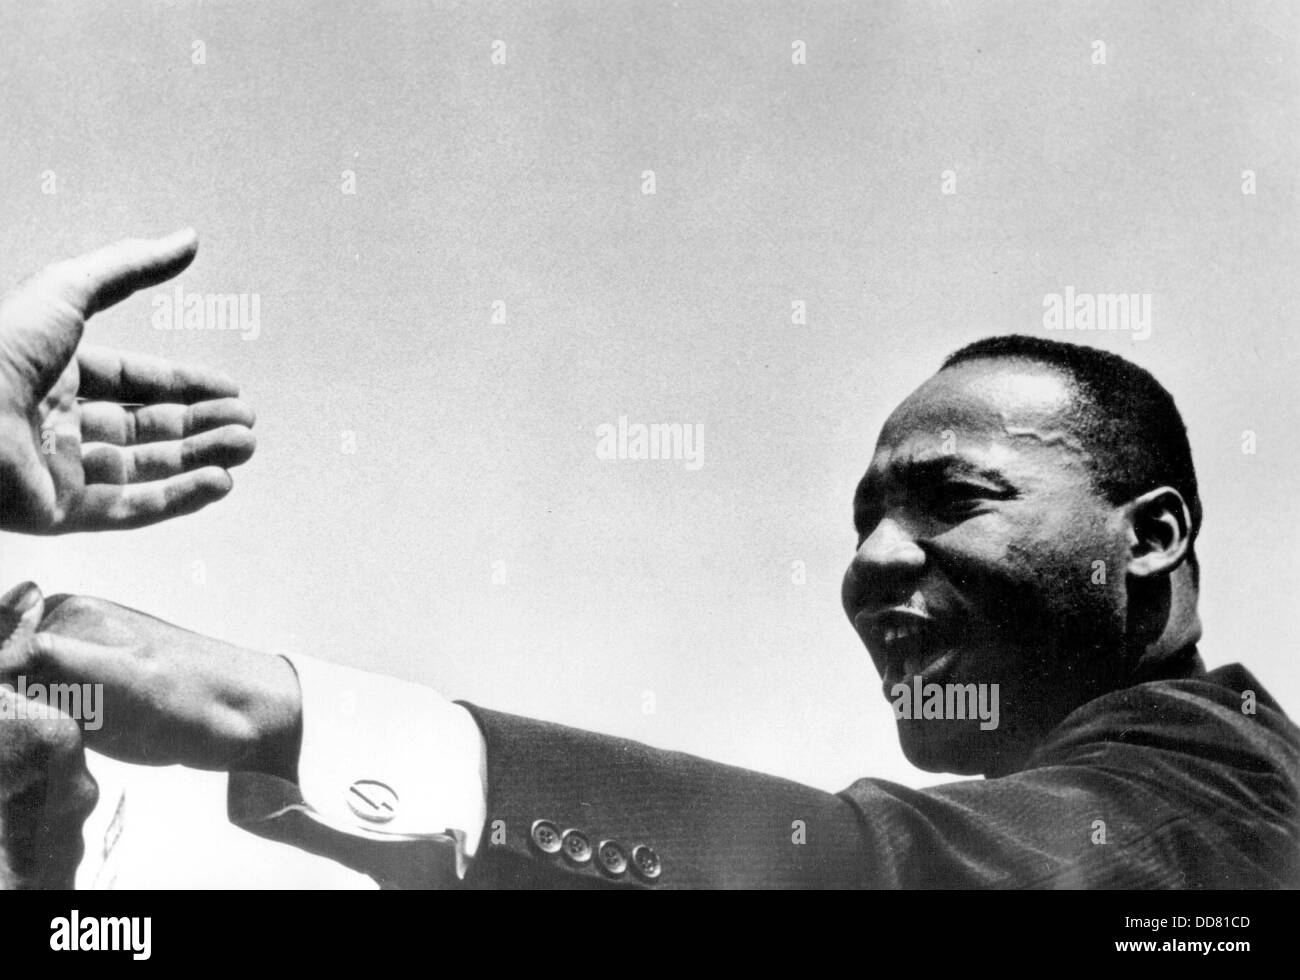 Washington, District of Columbia, USA. 28th Aug, 2013. Fifty years to the day after the Rev. Martin Luther King - Stock Image